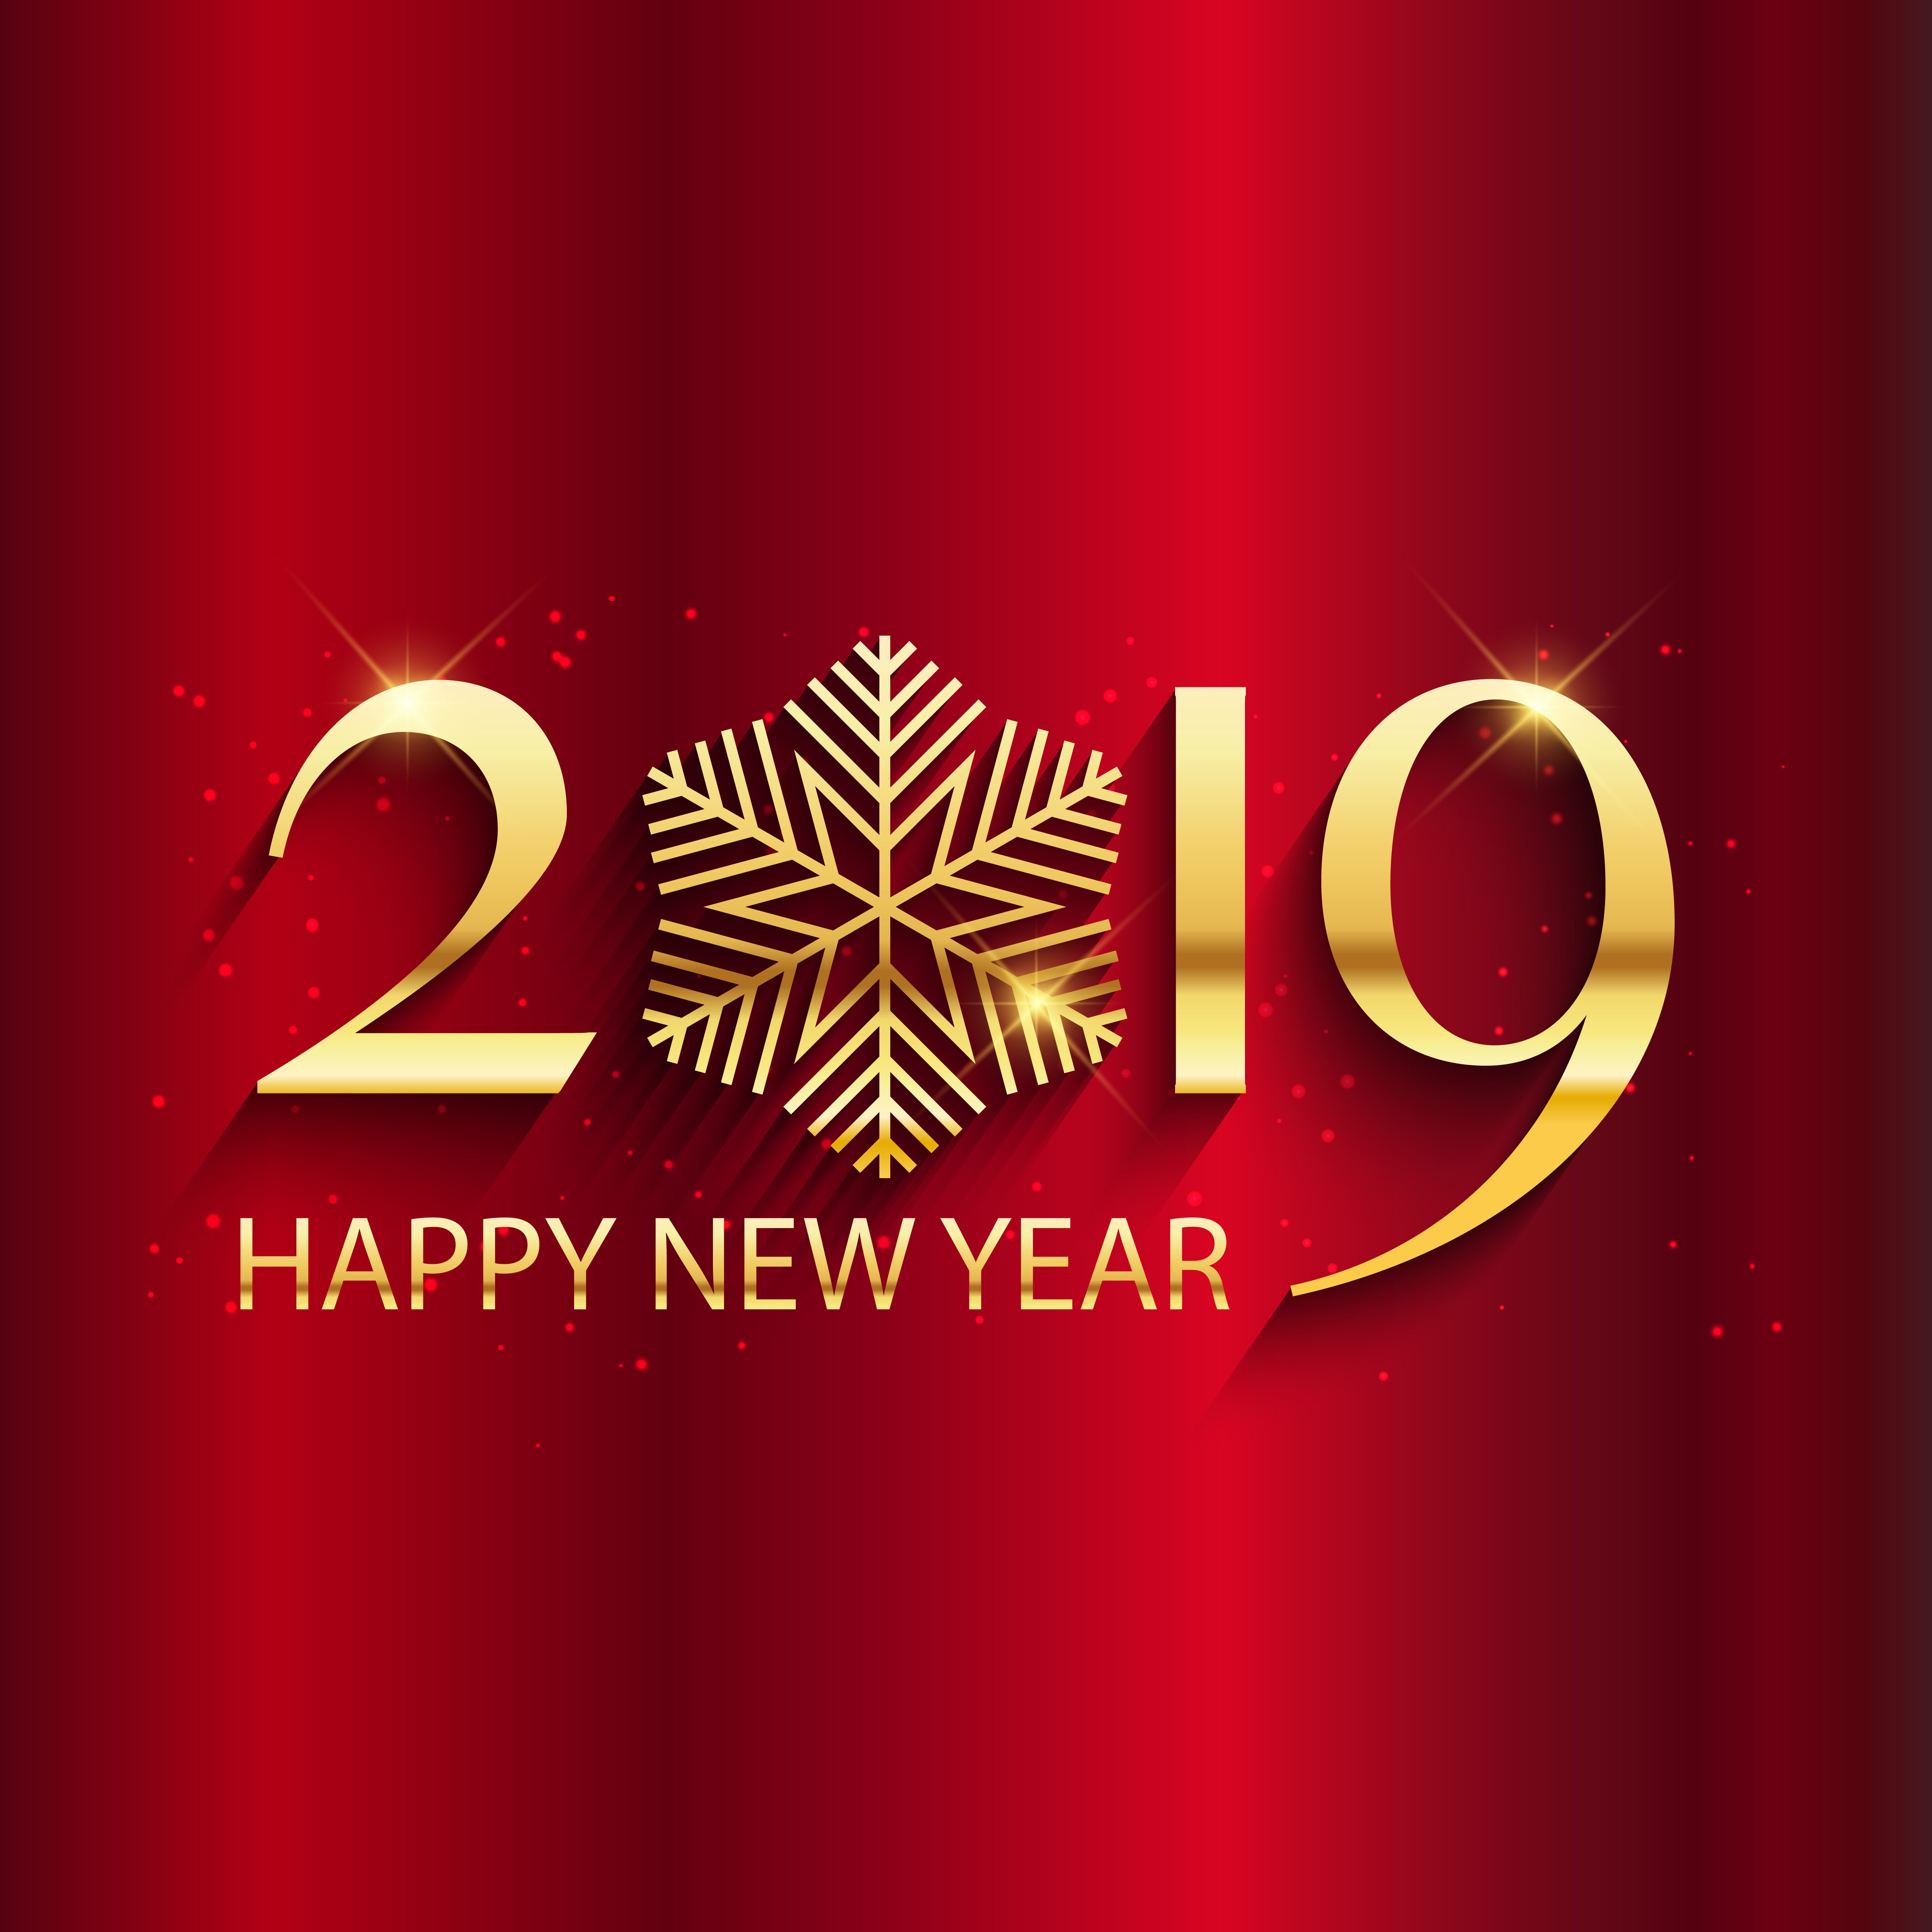 Happy New Year Background With Gold Lettering And Snowflake Desi Download Free Vectors Clipart Graphics Vector Art